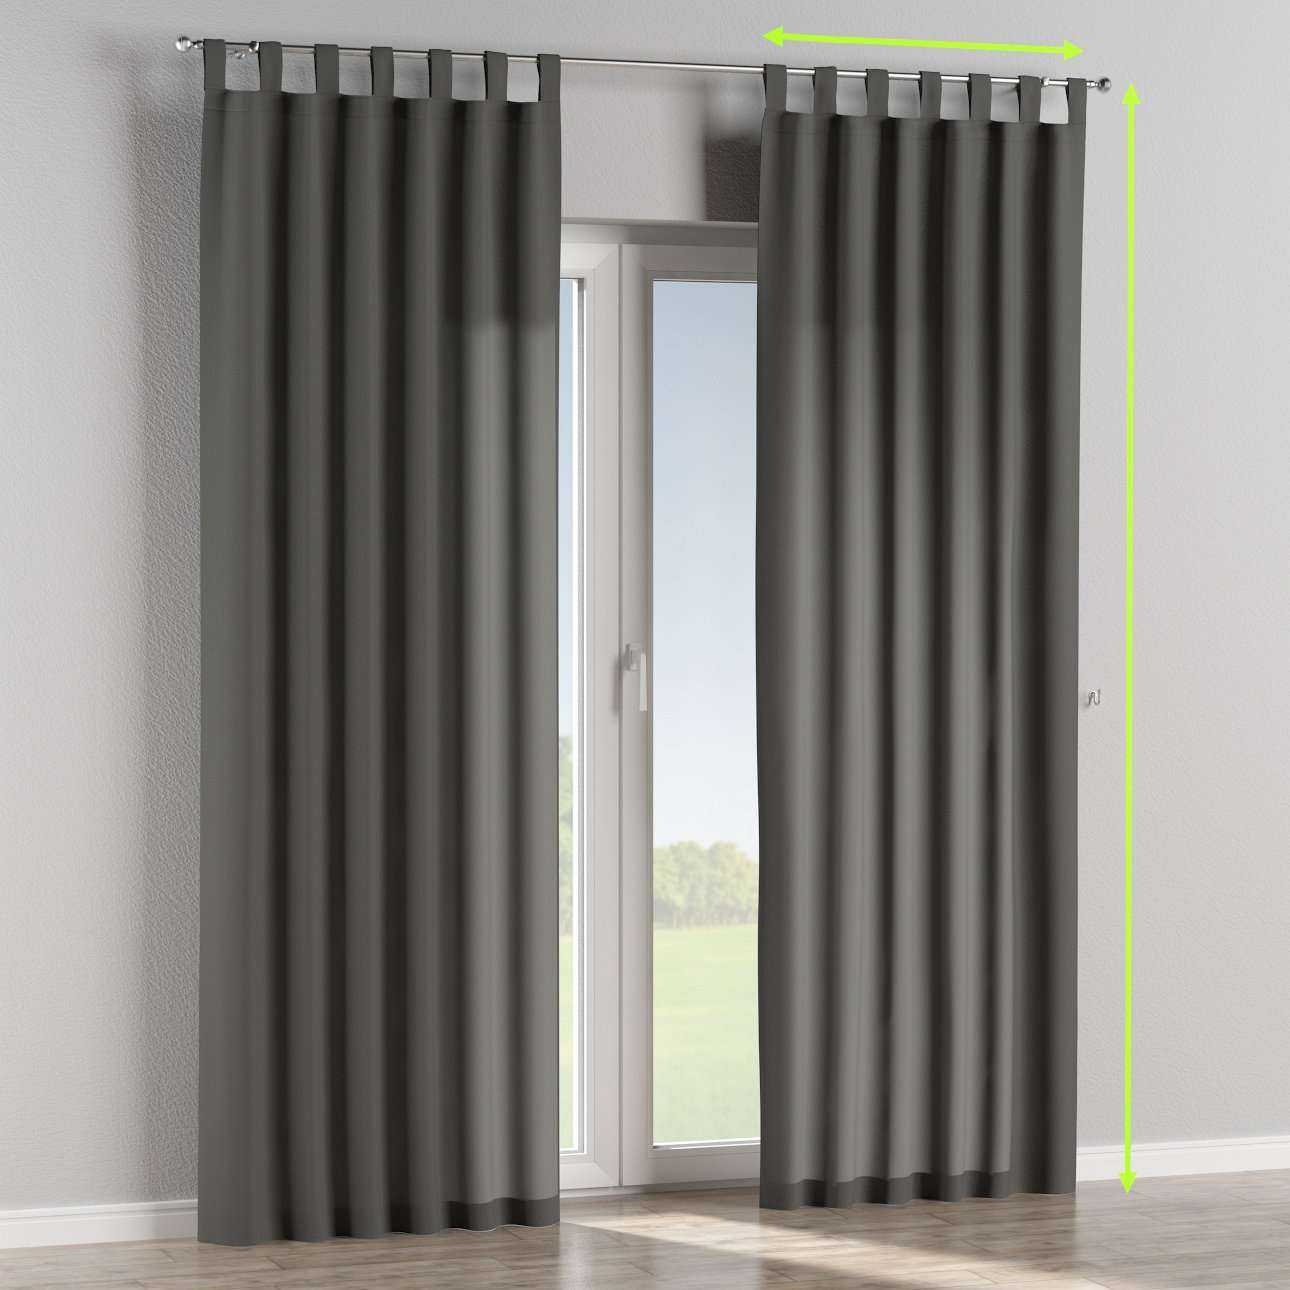 Tab top lined curtains in collection Quadro, fabric: 136-14